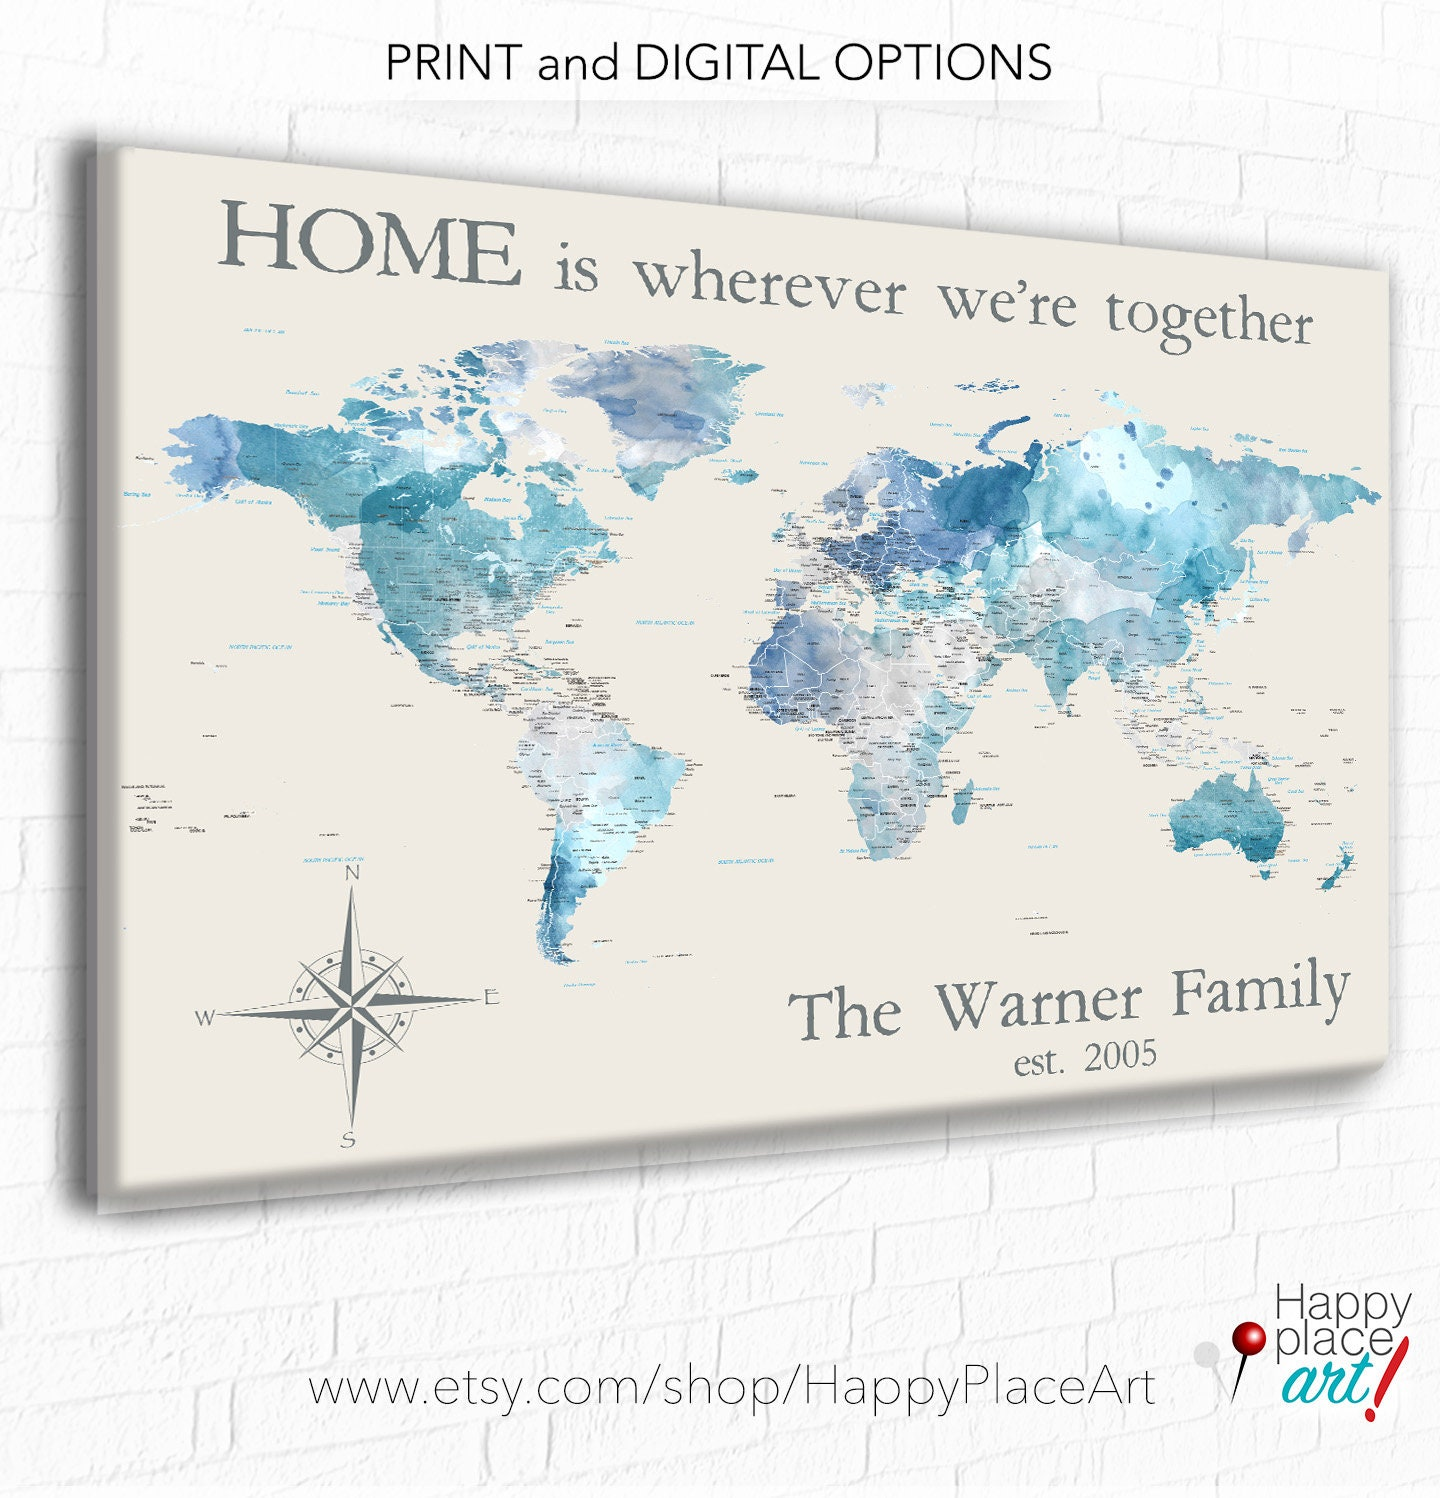 Personalized anniversary gift for couple personalized world map for personalized anniversary gift for couple personalized world map for family travels adventure awaits world map customized blue push pin map gumiabroncs Images